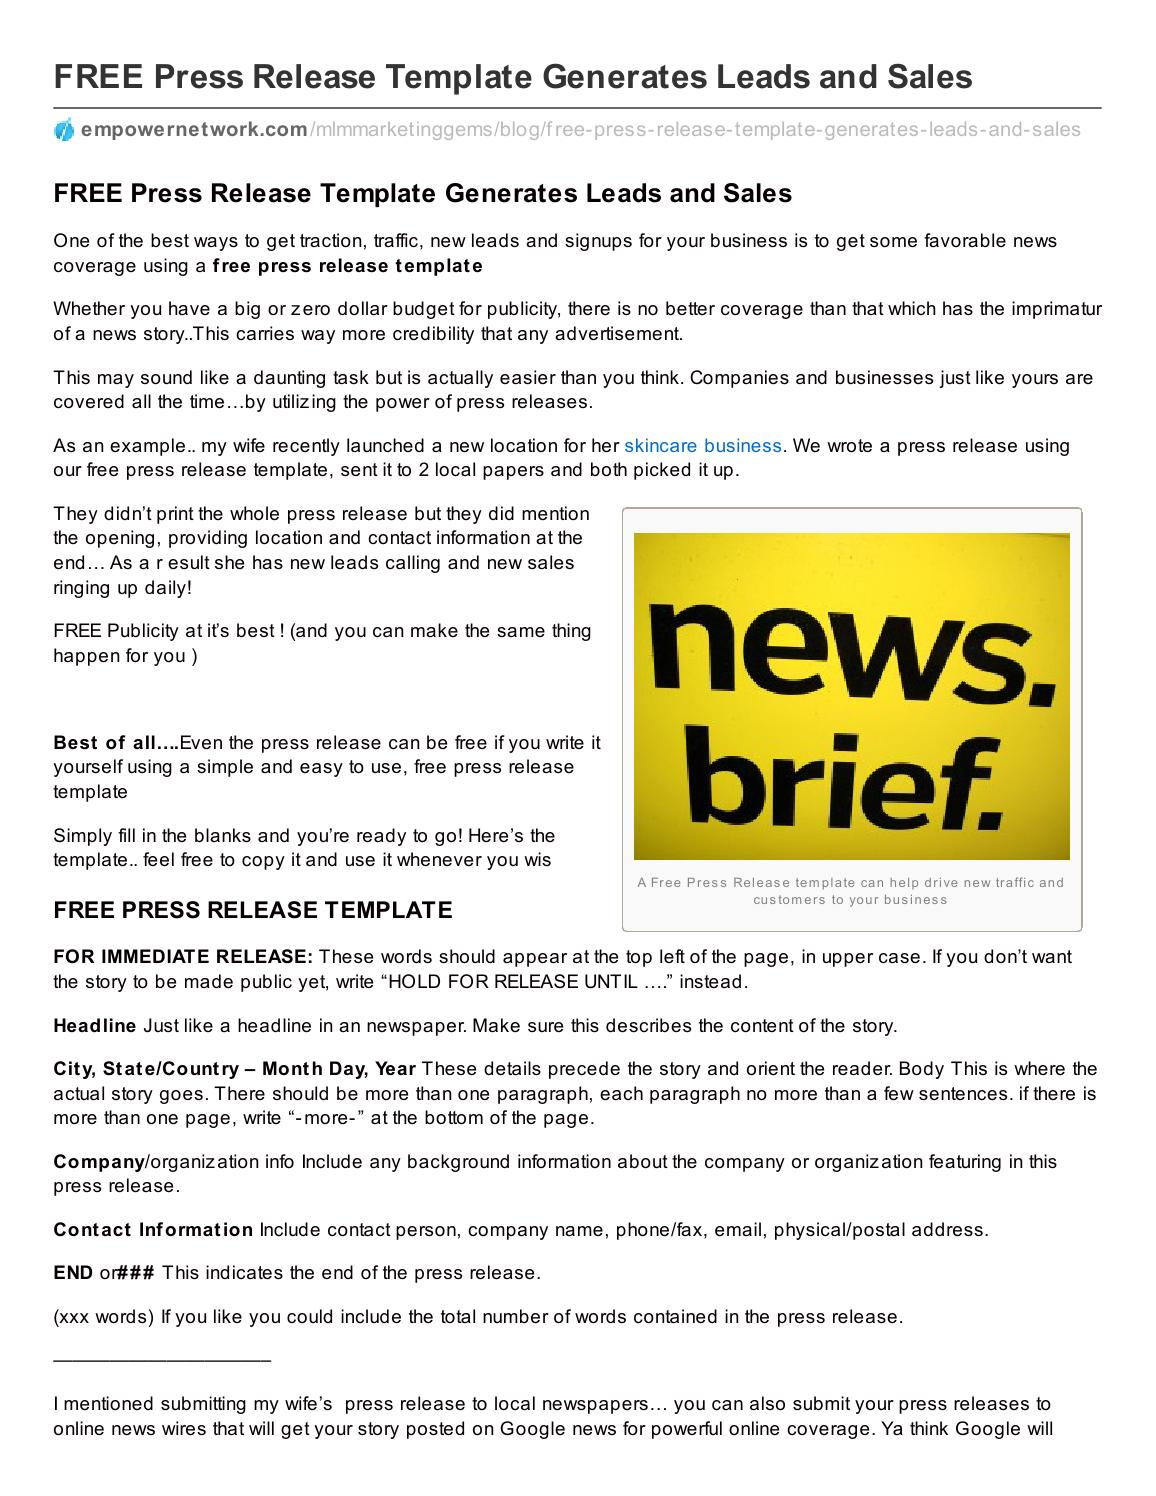 Free Press Release Template Generates Leads And Sales By Dr B Issuu